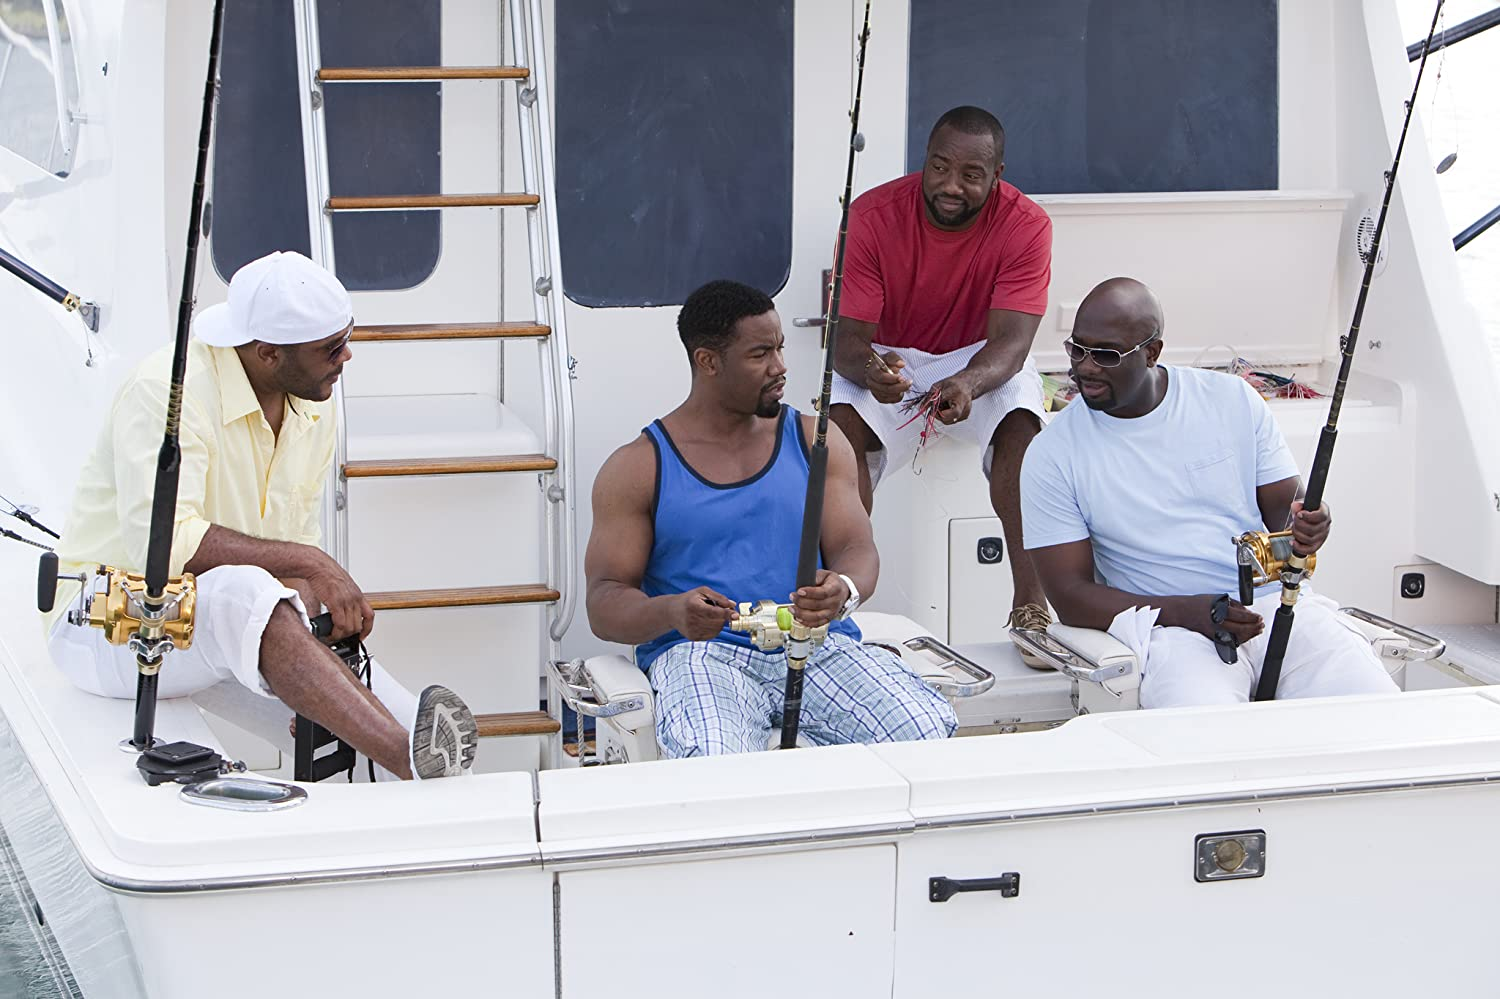 Richard T. Jones, Michael Jai White, Malik Yoba, and Tyler Perry in Why Did I Get Married Too? (2010)